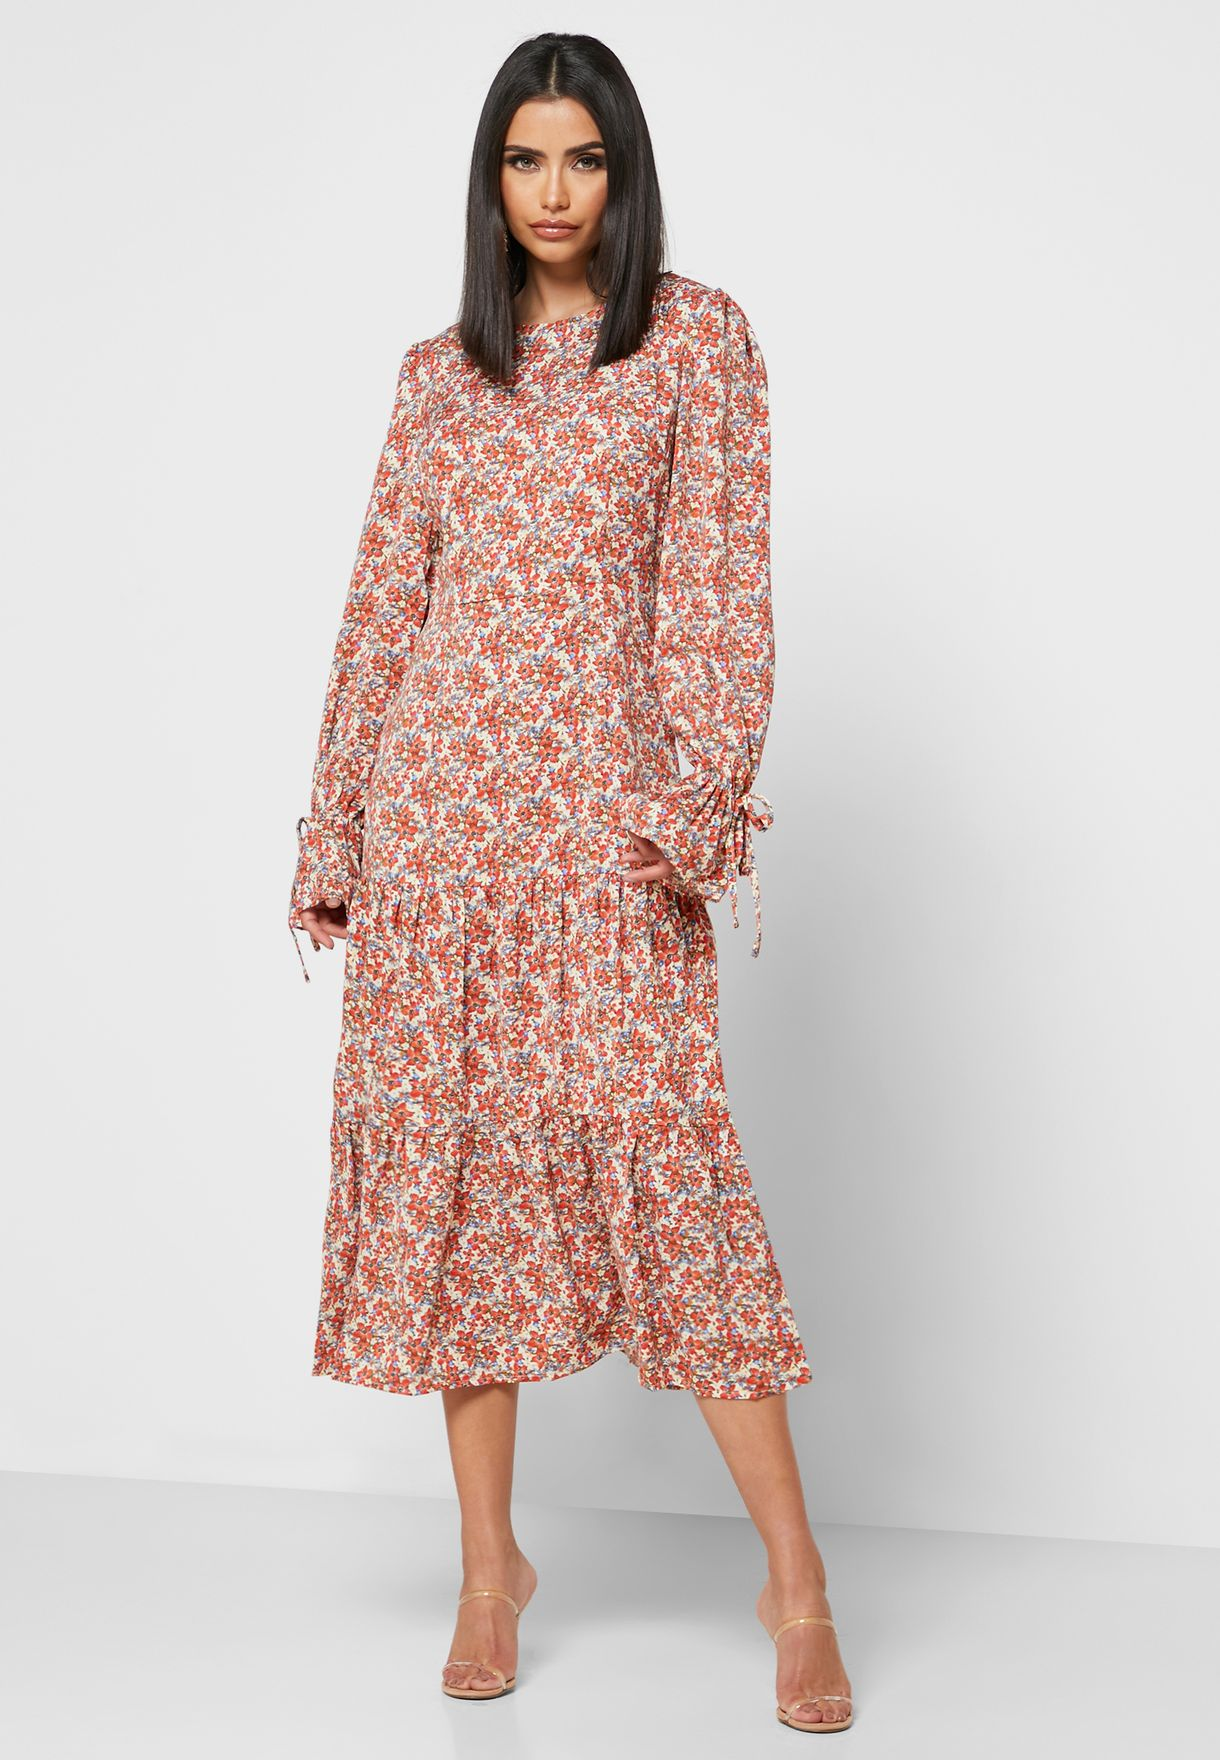 Tiered Hem Floral Print Dress